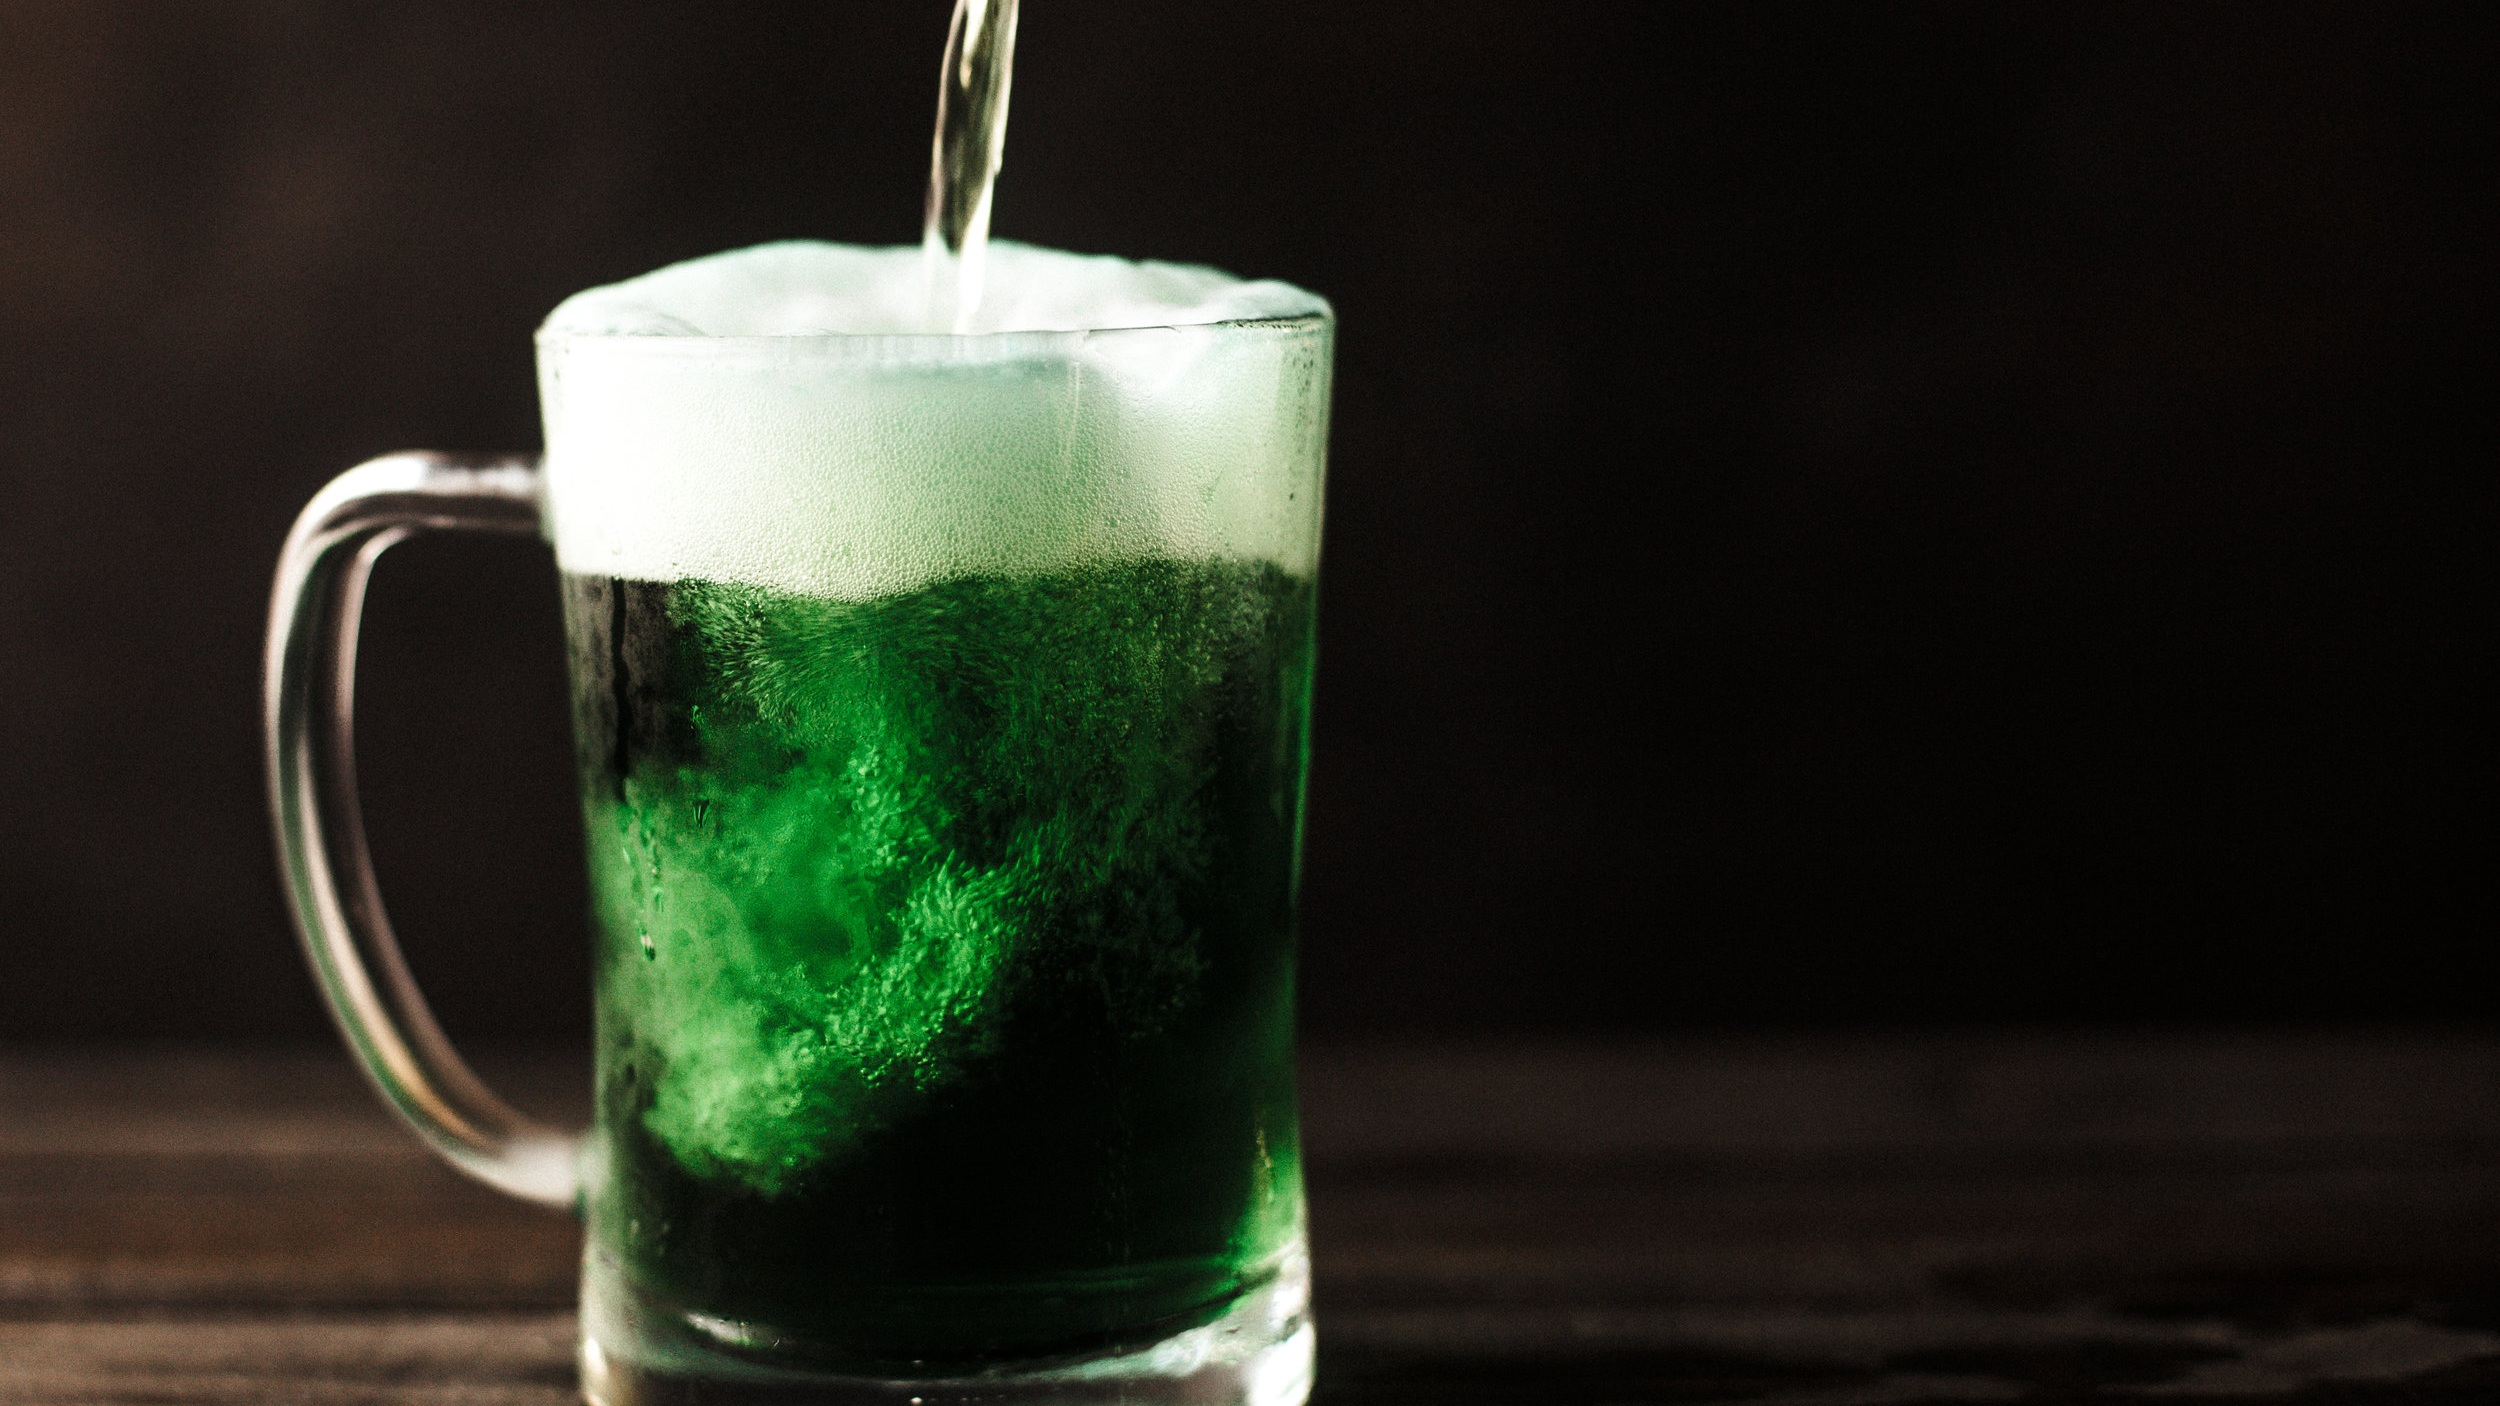 Green beer is a great way to celebrate St. Patrick's Day in the Quad Cities